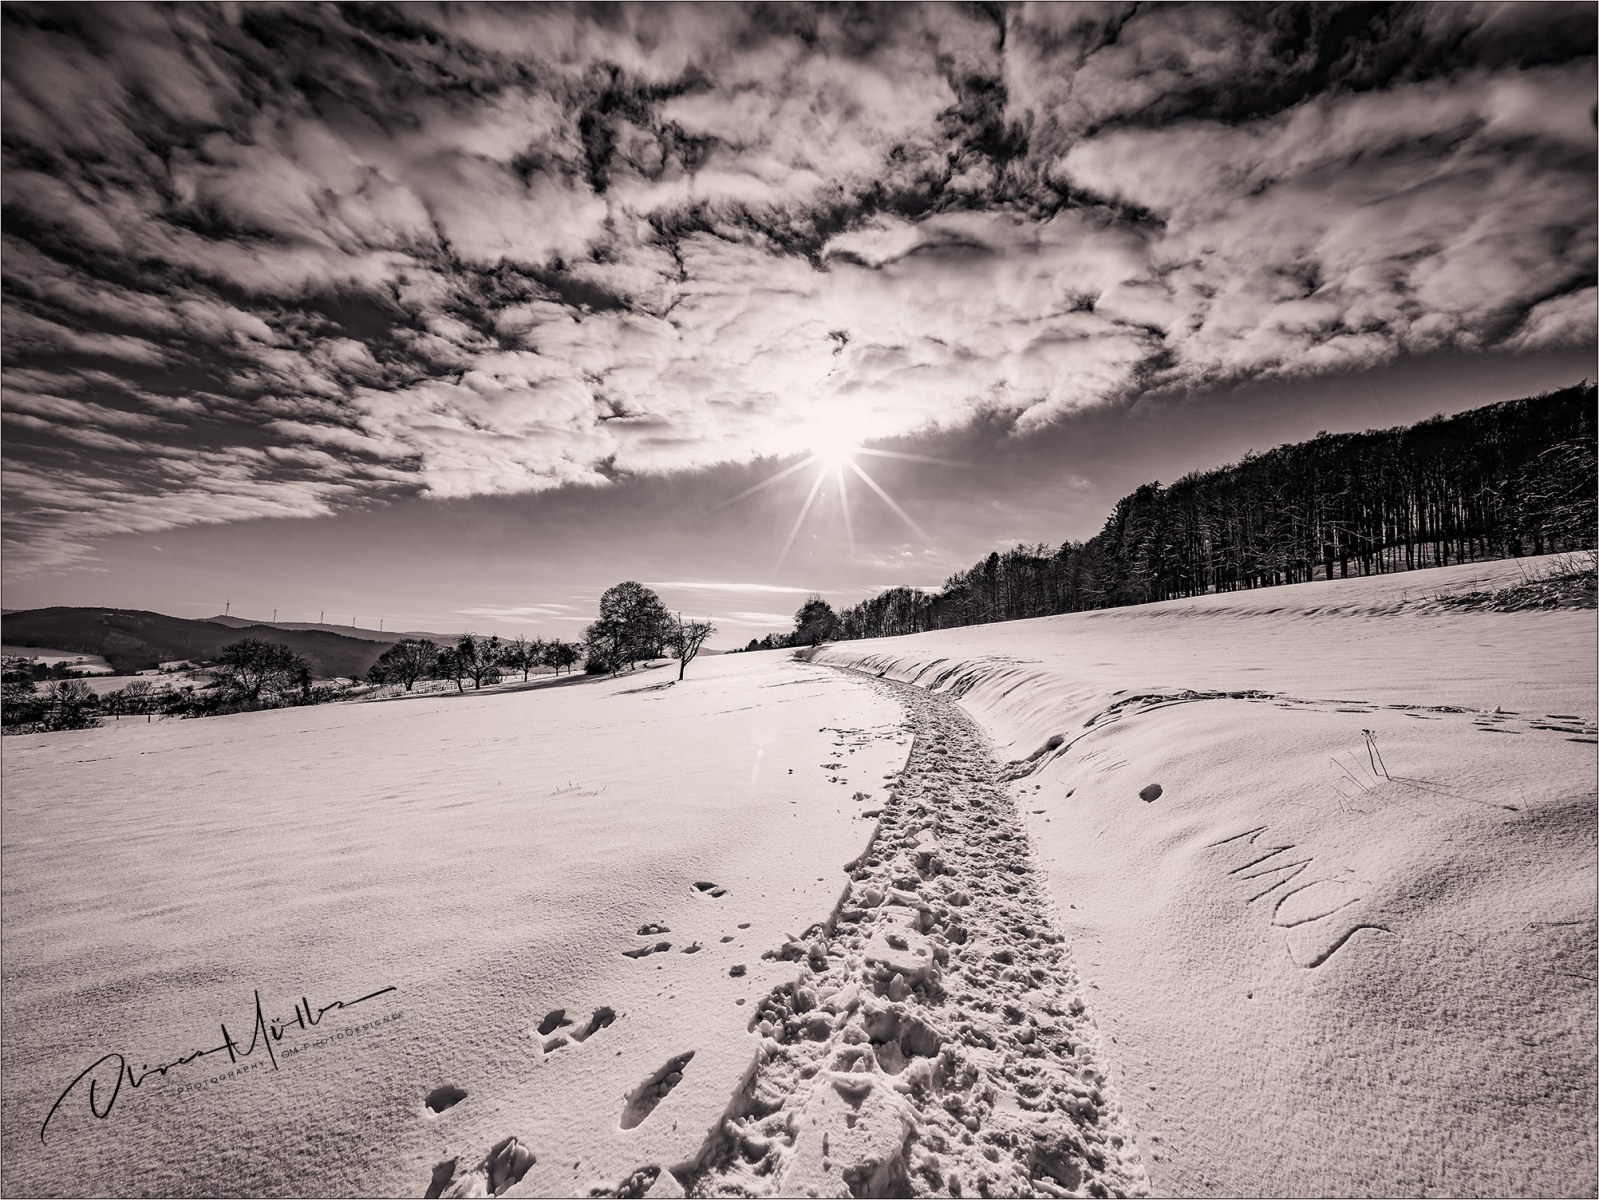 Snowy way to the sun